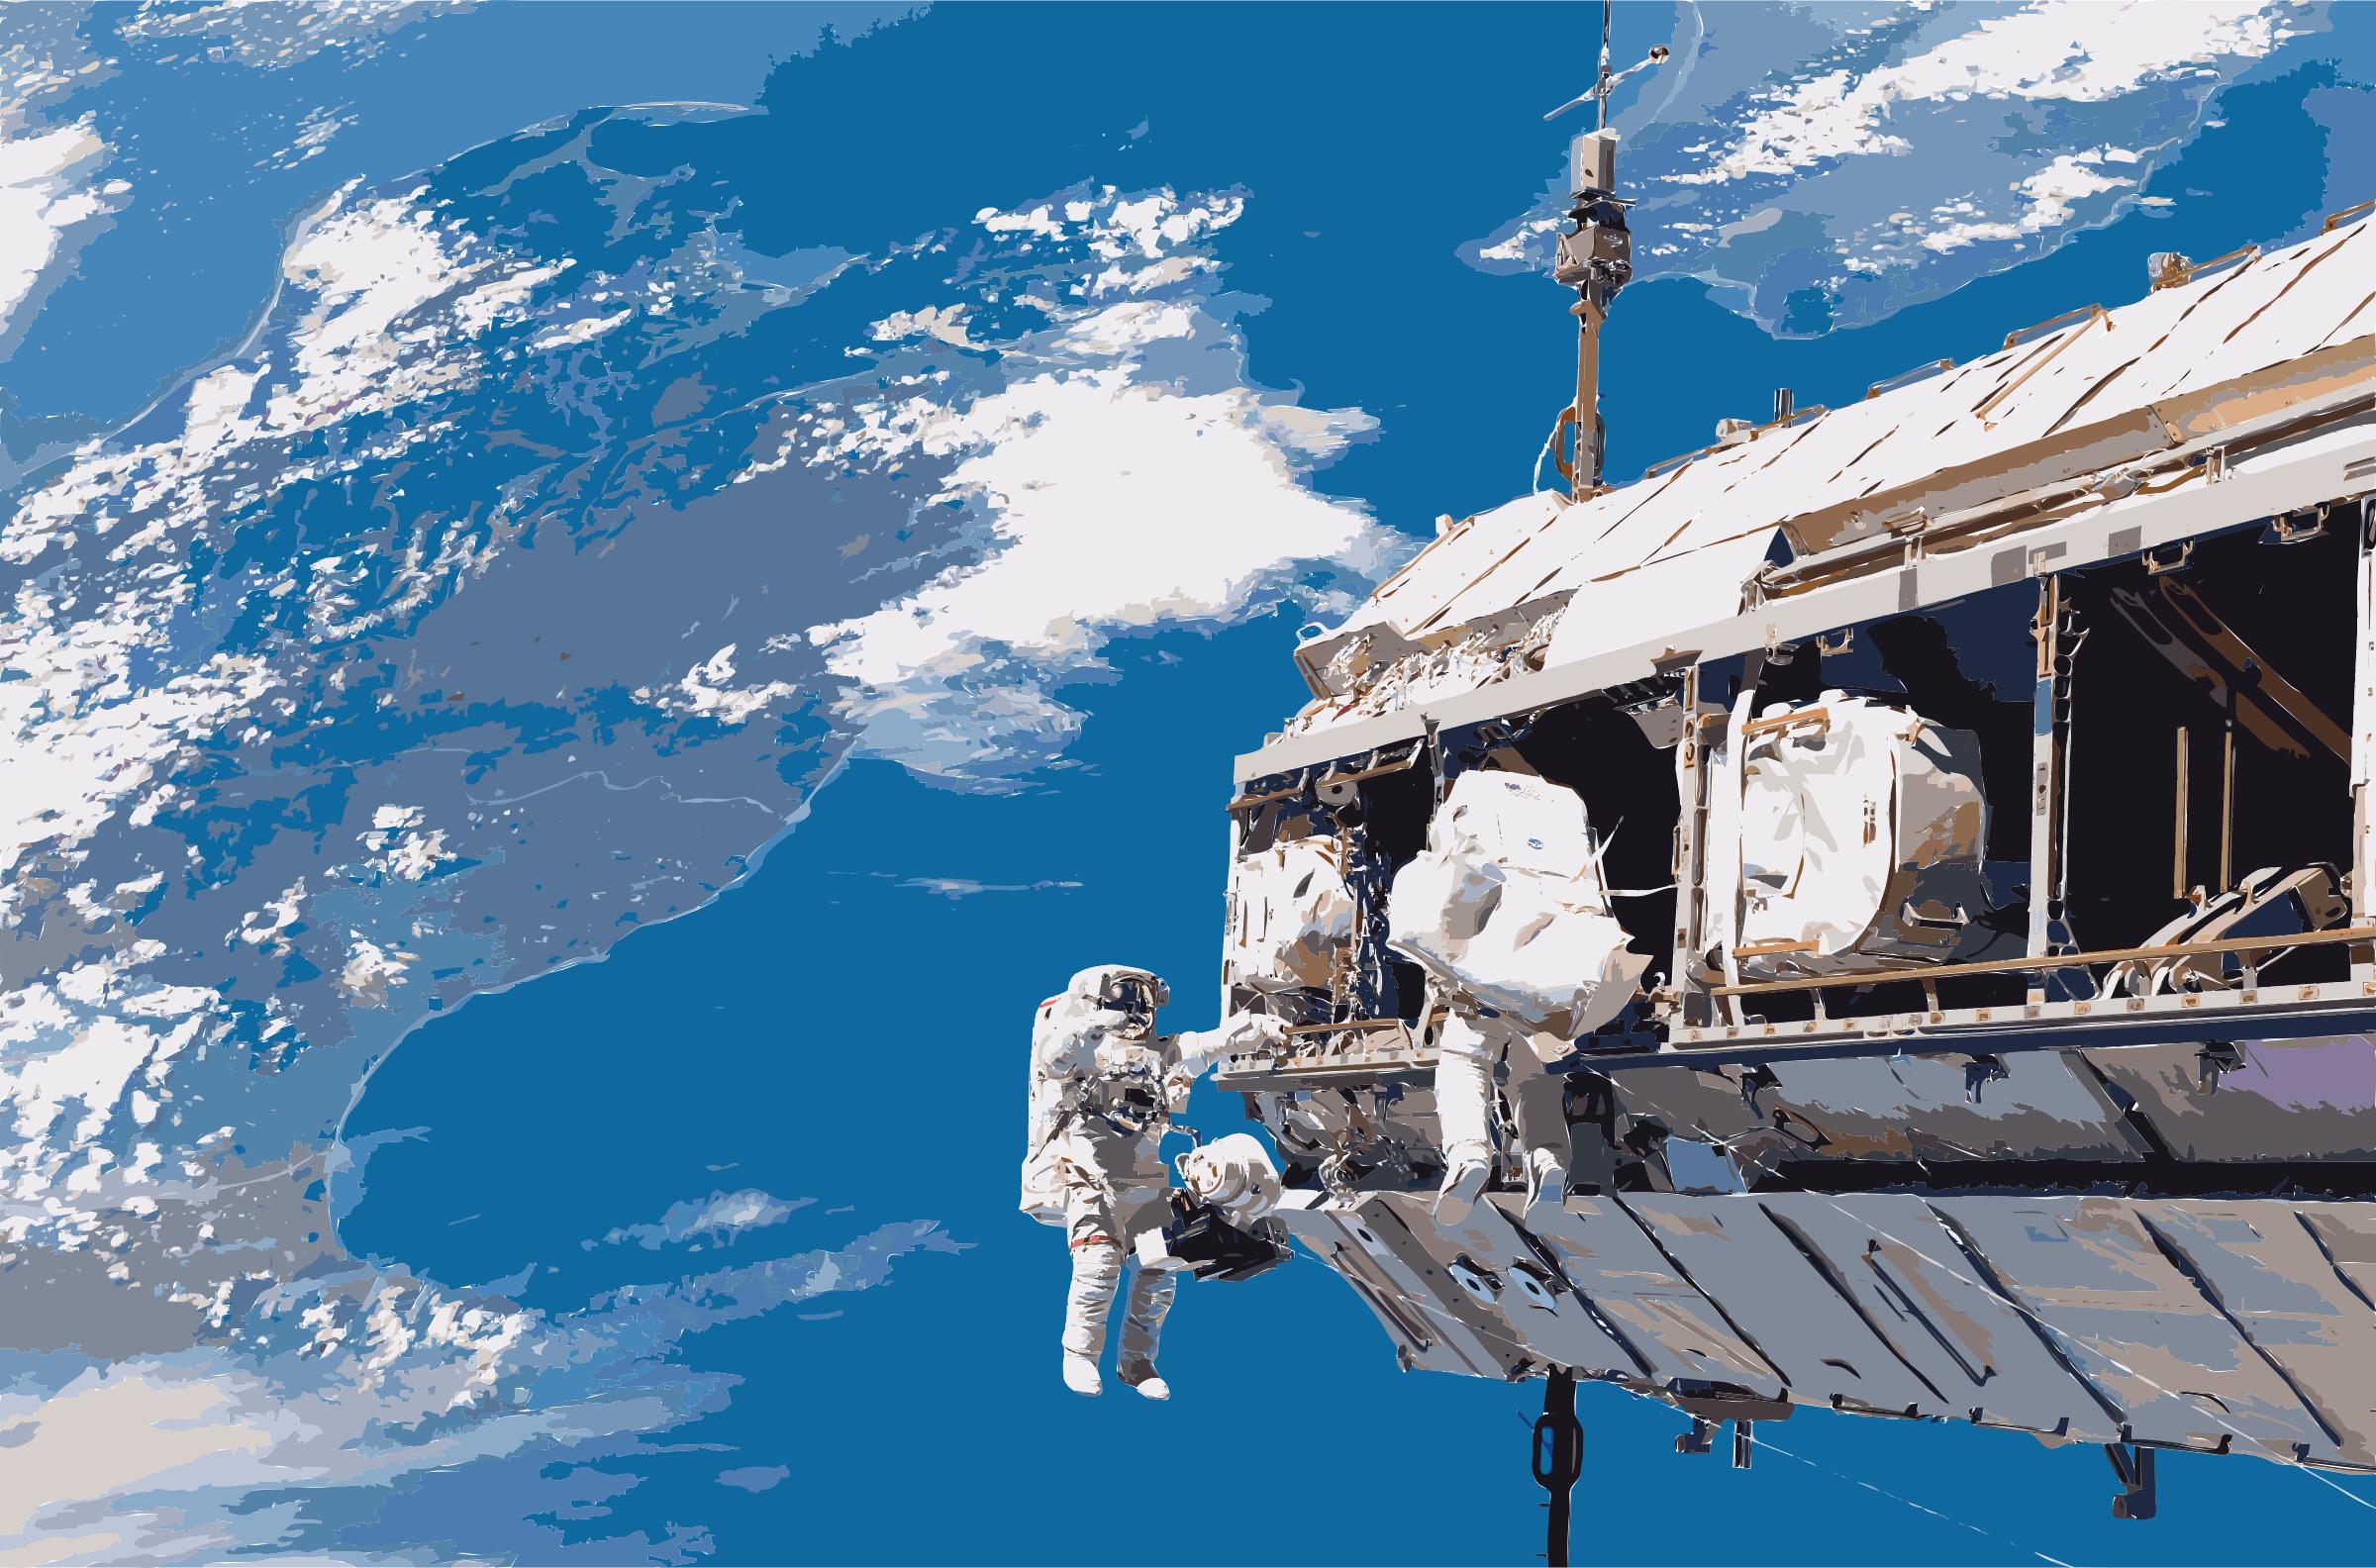 STS-116 spacewalk 1 by 3wfccu+dfr7lirxlbqkc